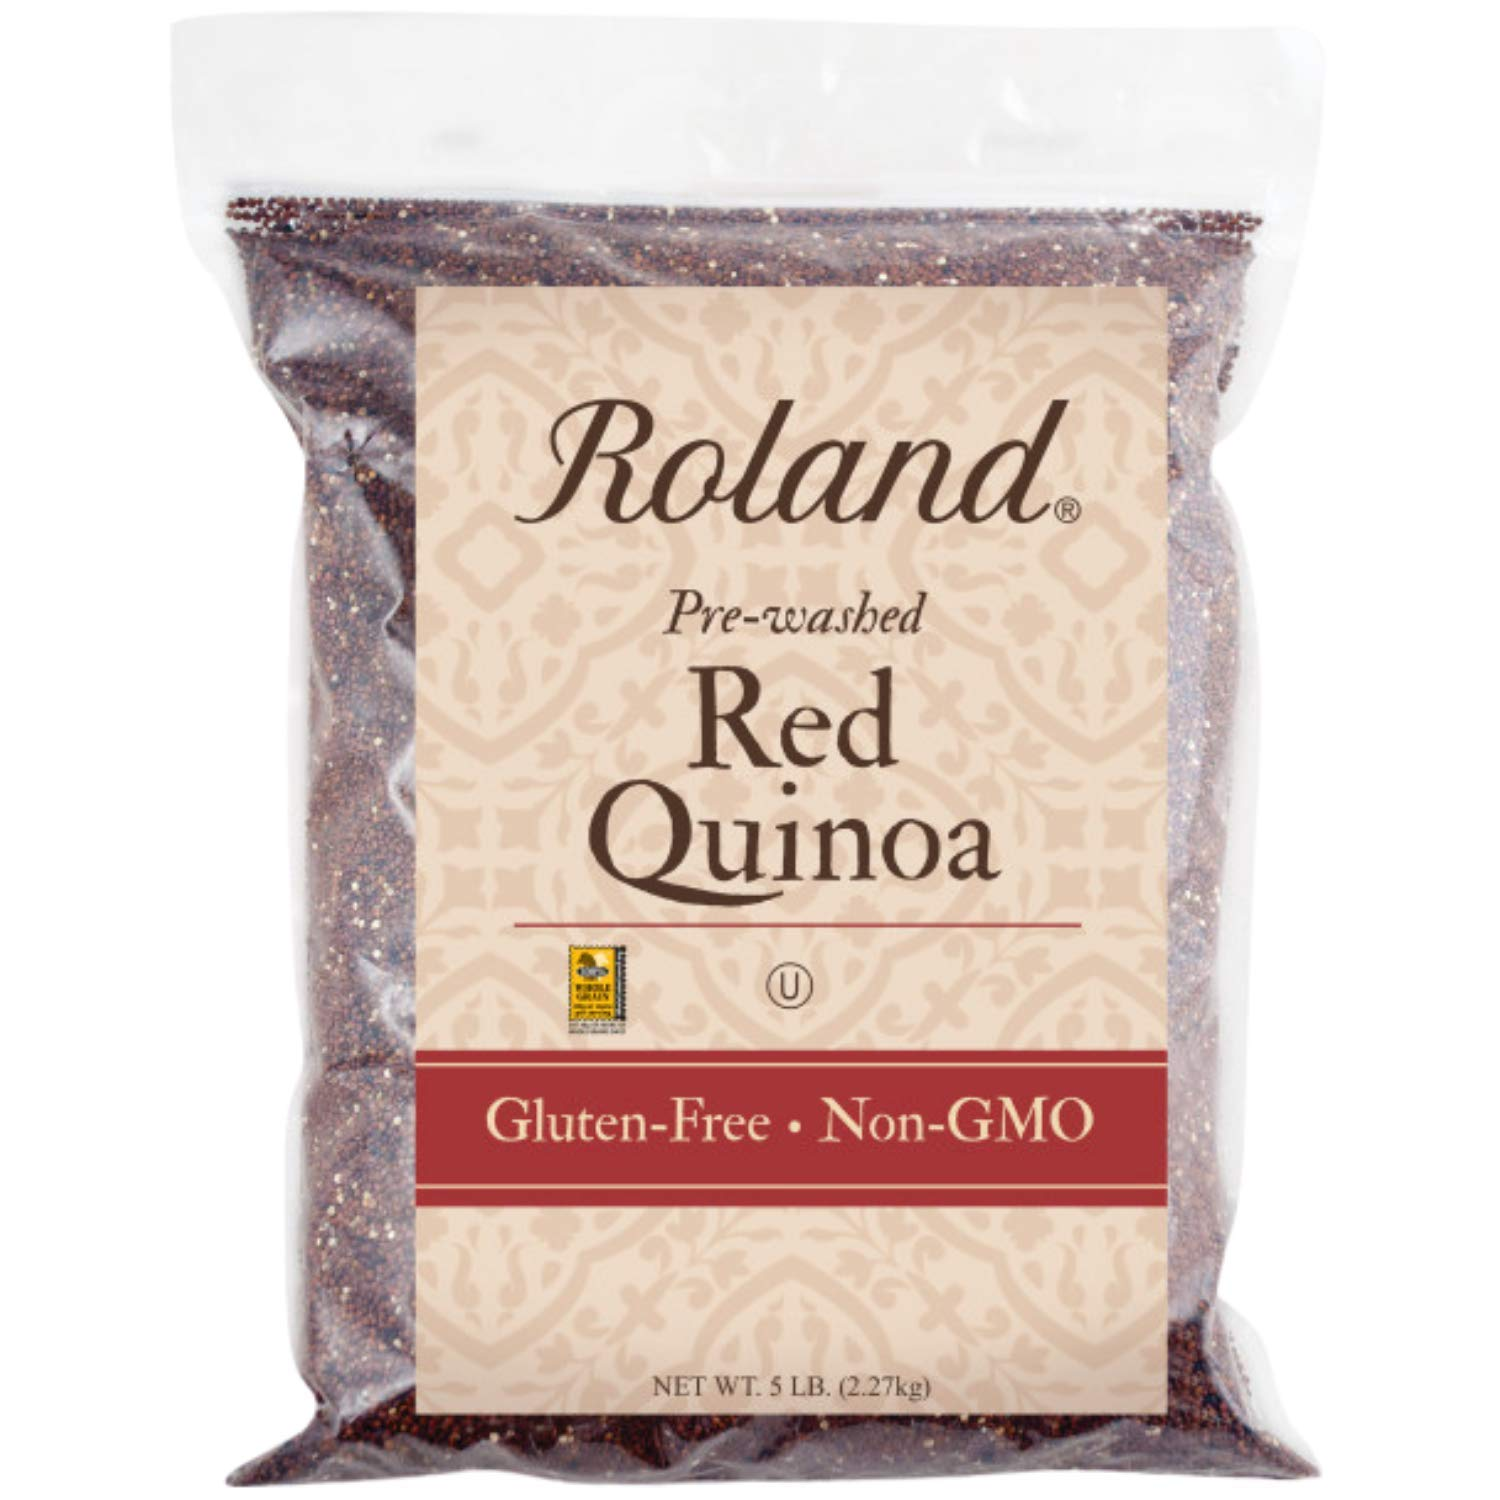 Roland Foods Red Quinoa from Peru, Pre-washed, 5 Lb Bag